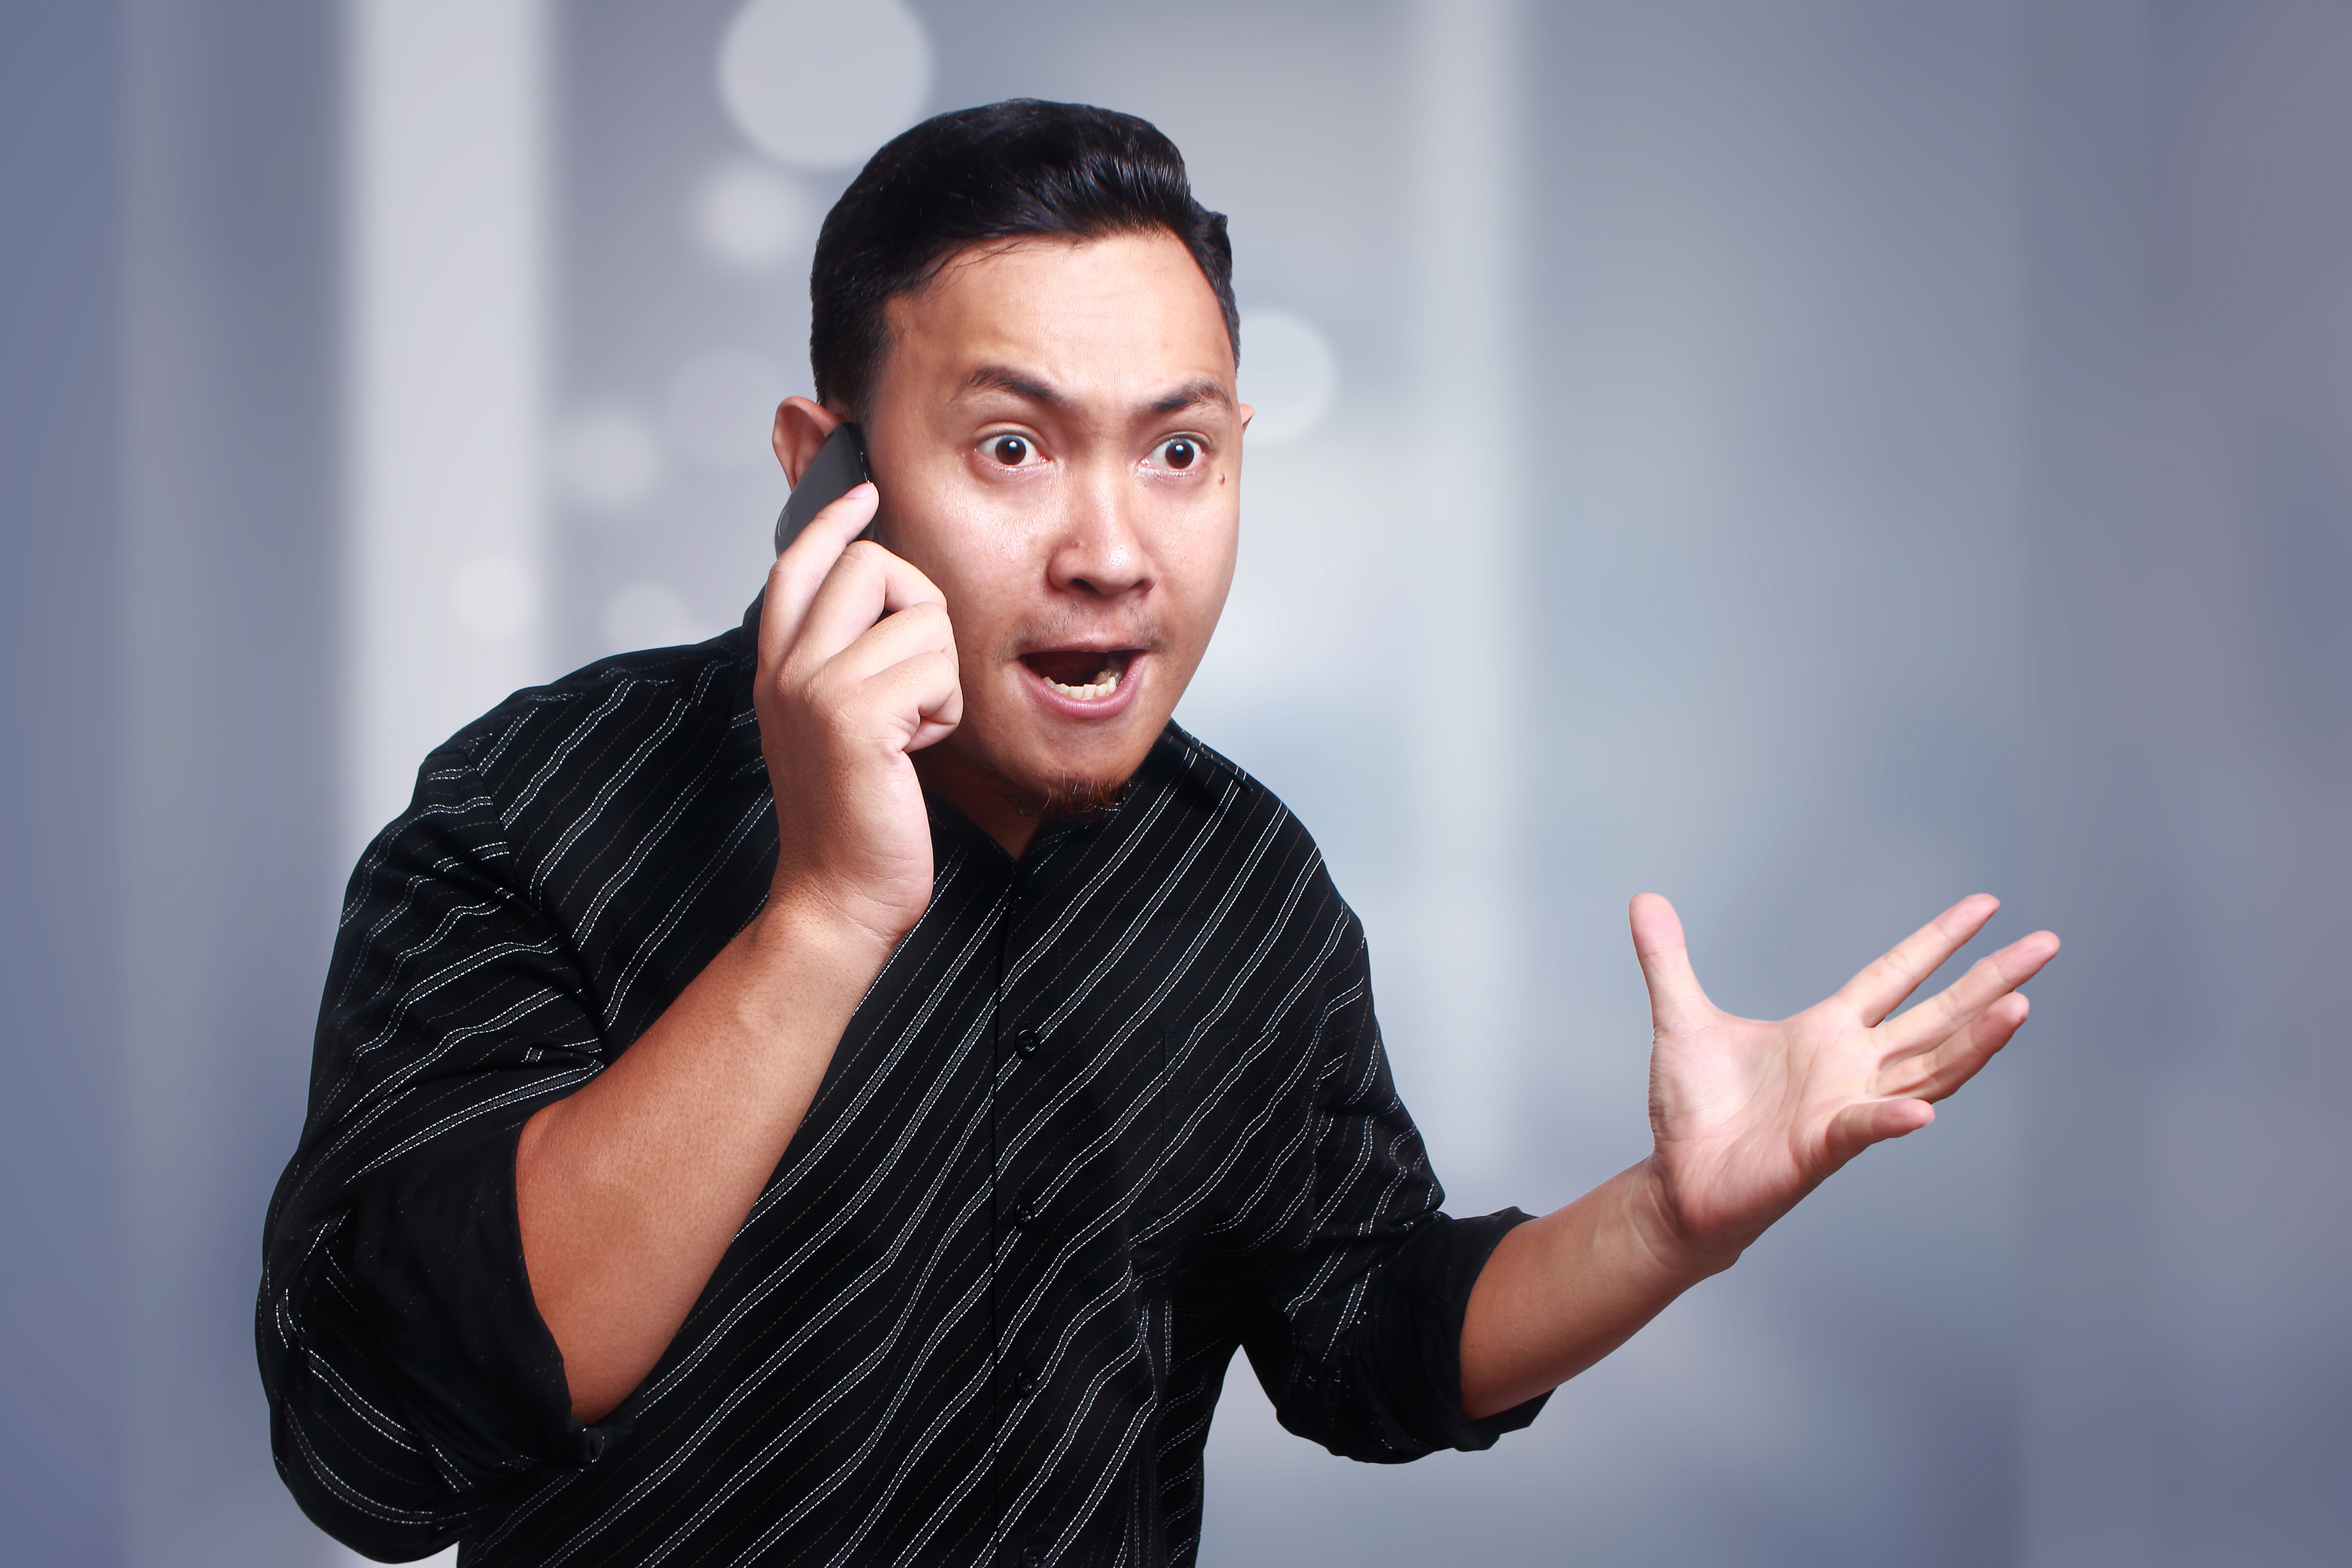 Man angry on the phone